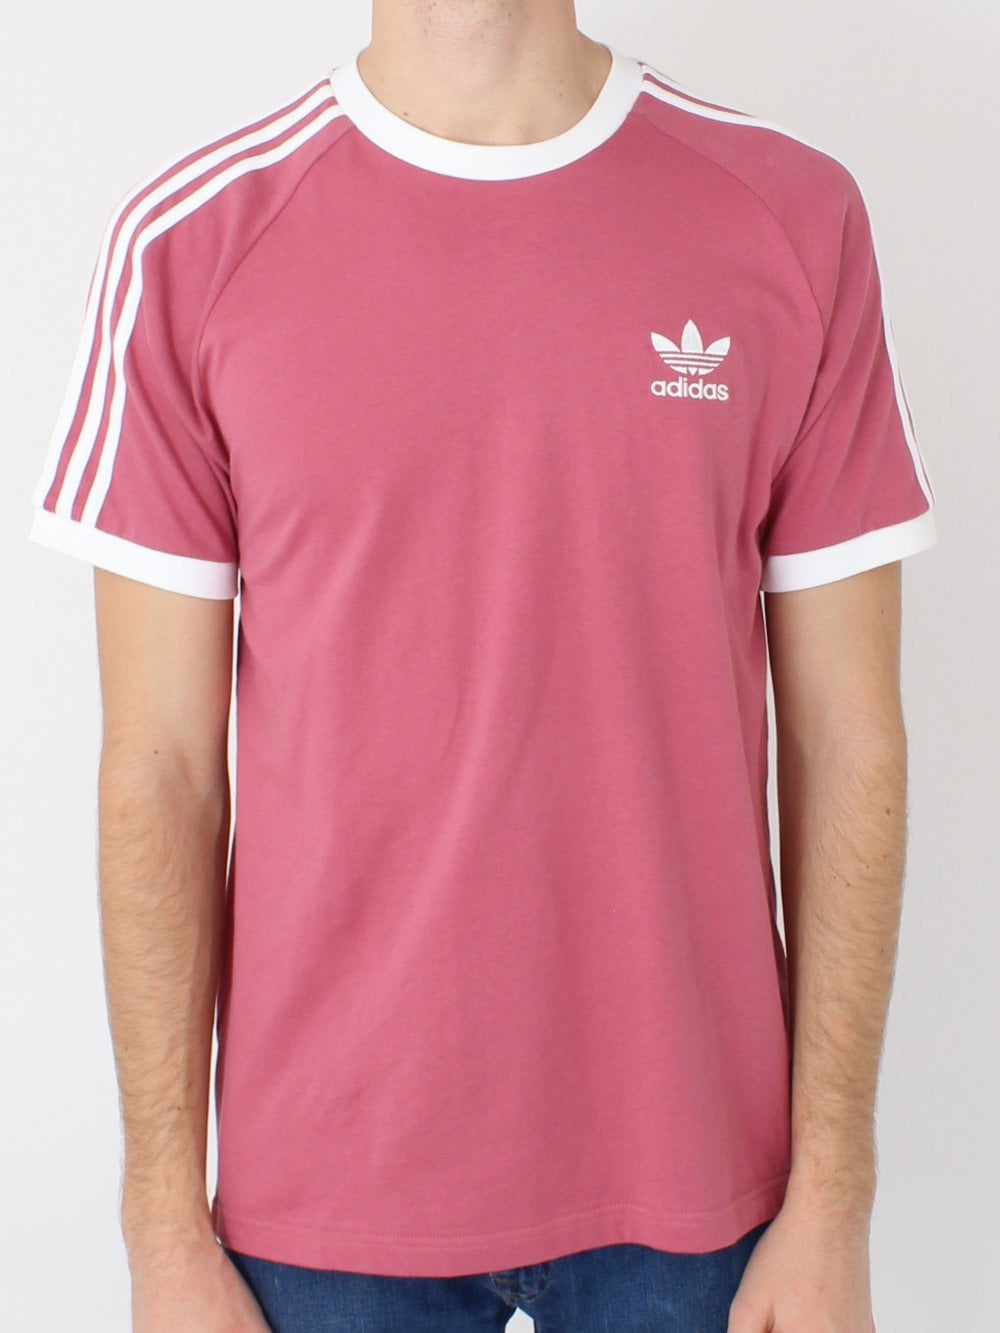 3a8d0e153c Adidas 3 Stripes T.Shirt in Pink Mist | Northern Threads